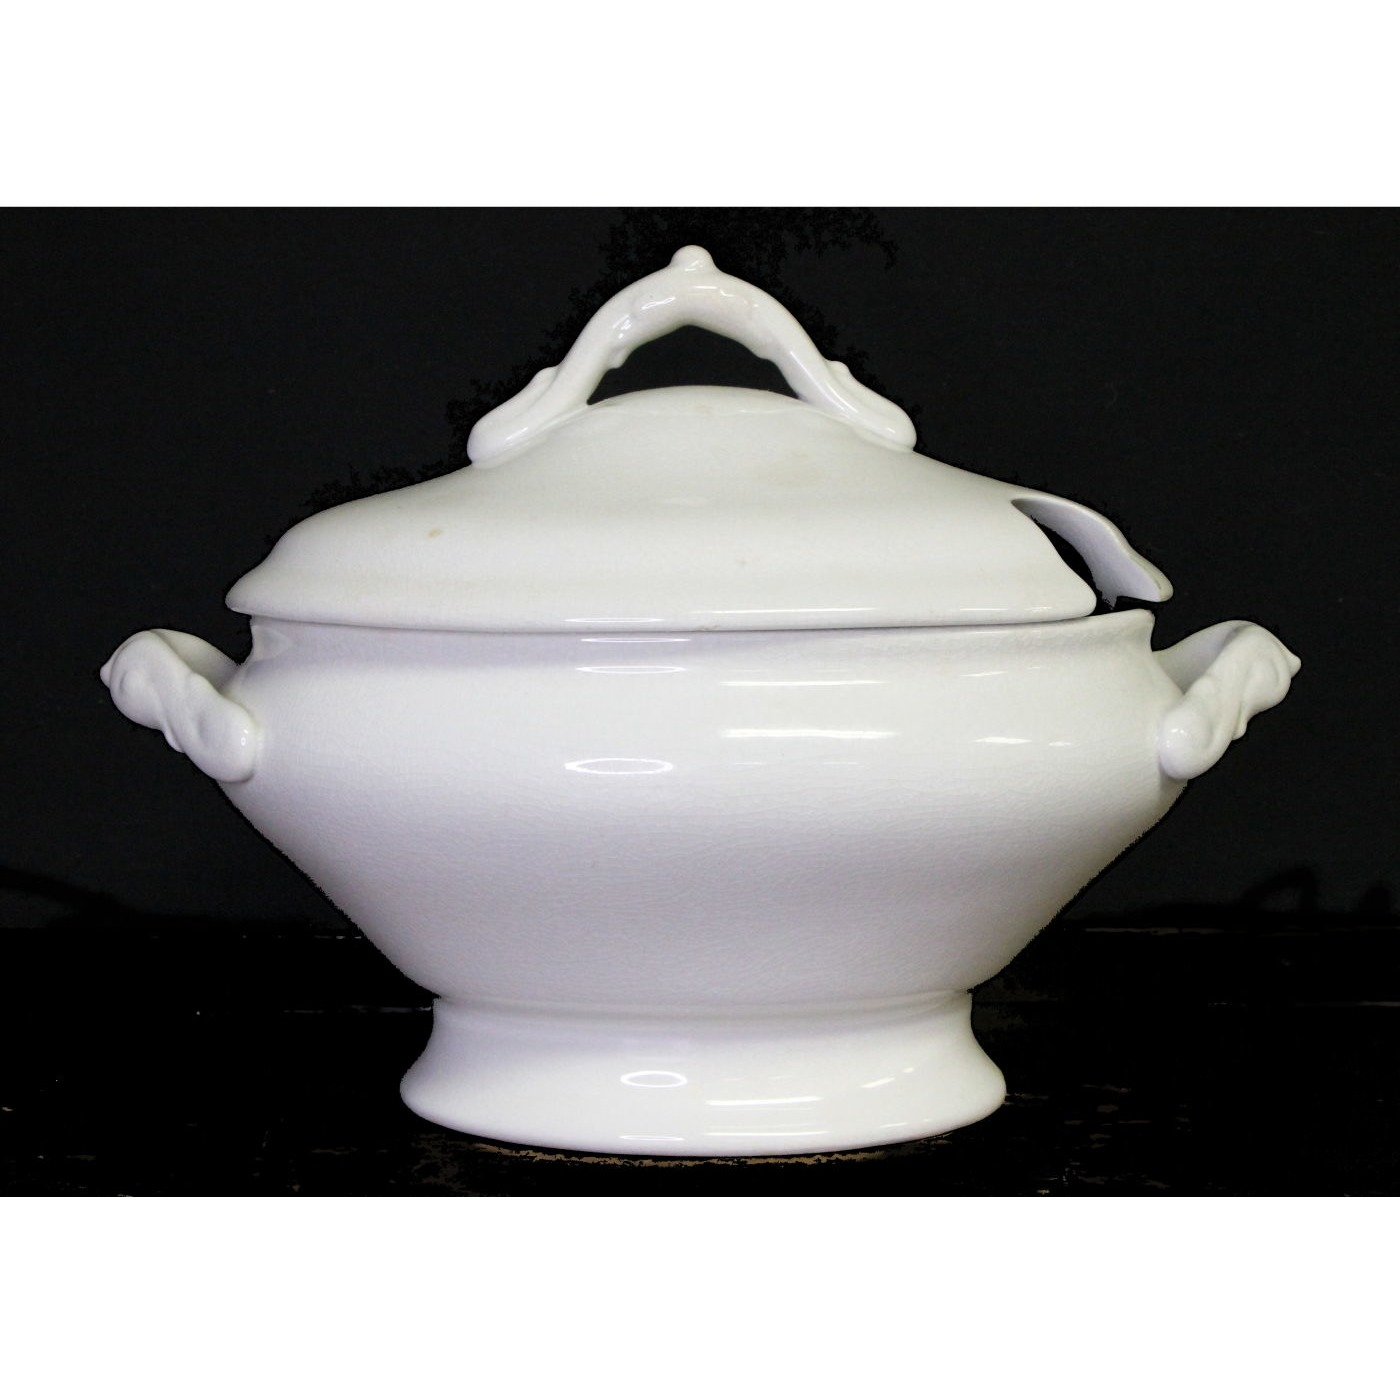 Super Simple Soup Ironstone Tureen with Strap Handles